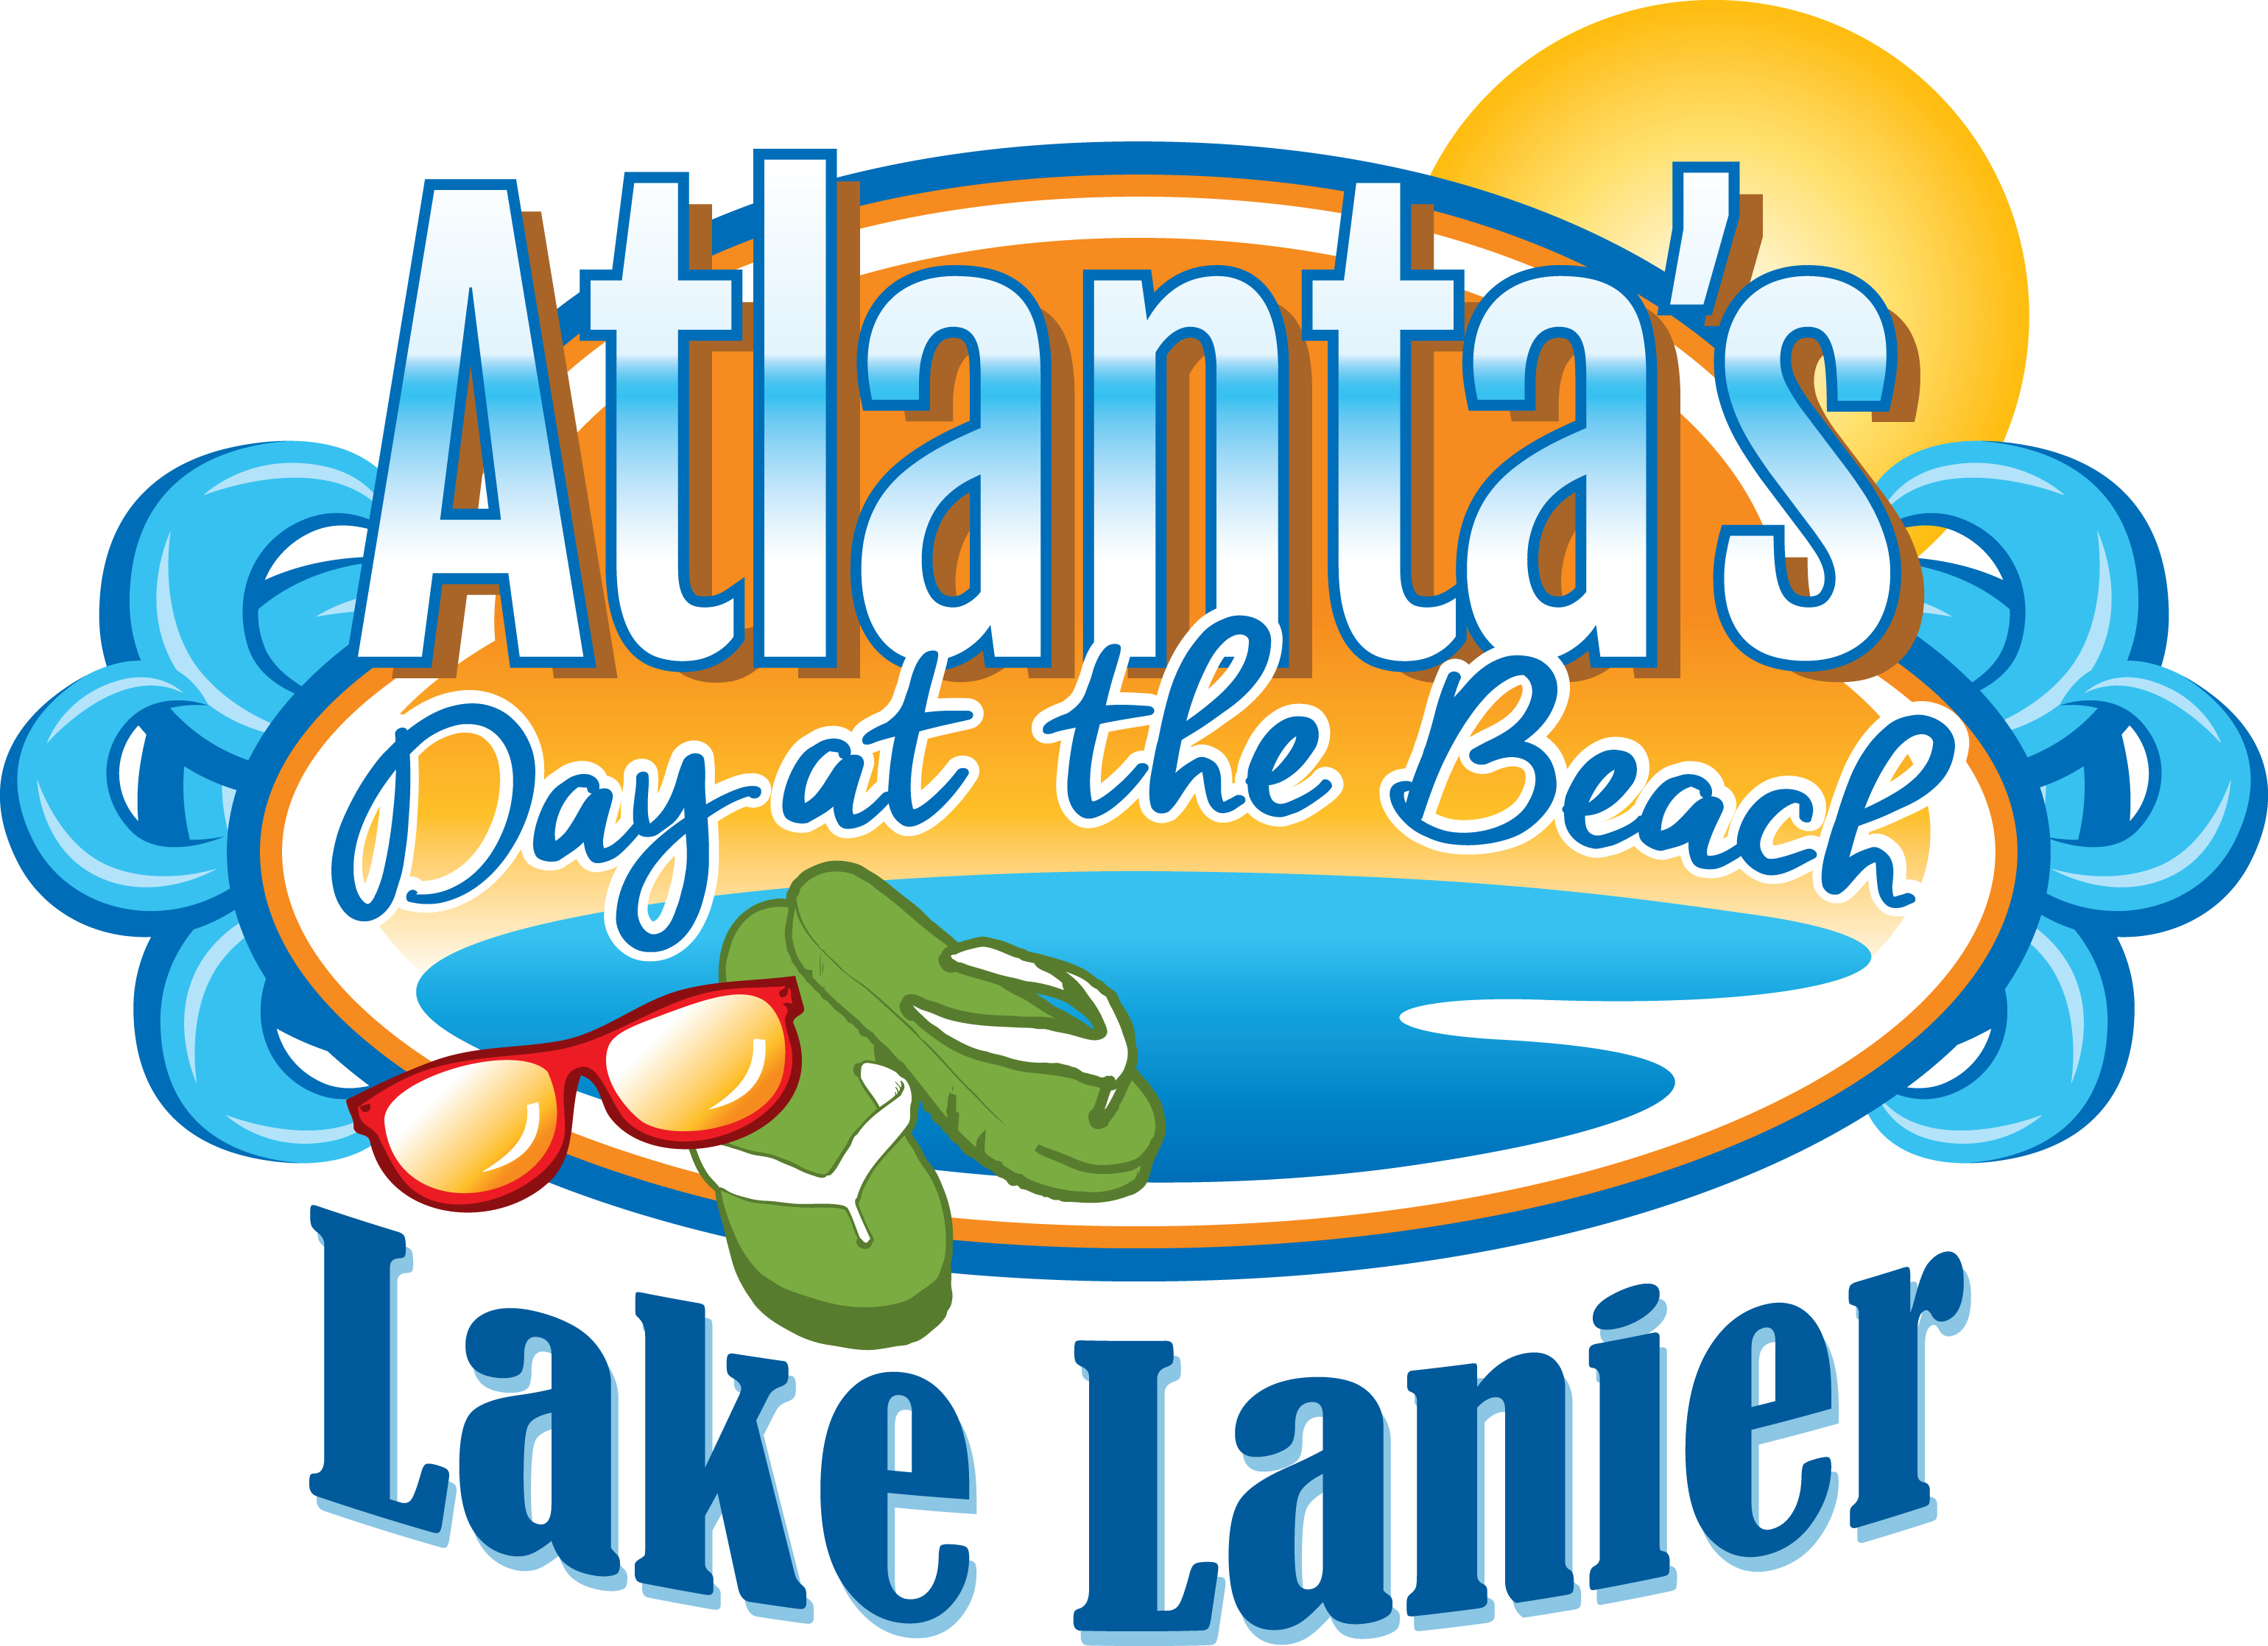 Atlantas Day At The Beach Sweepstakes Contest Rules